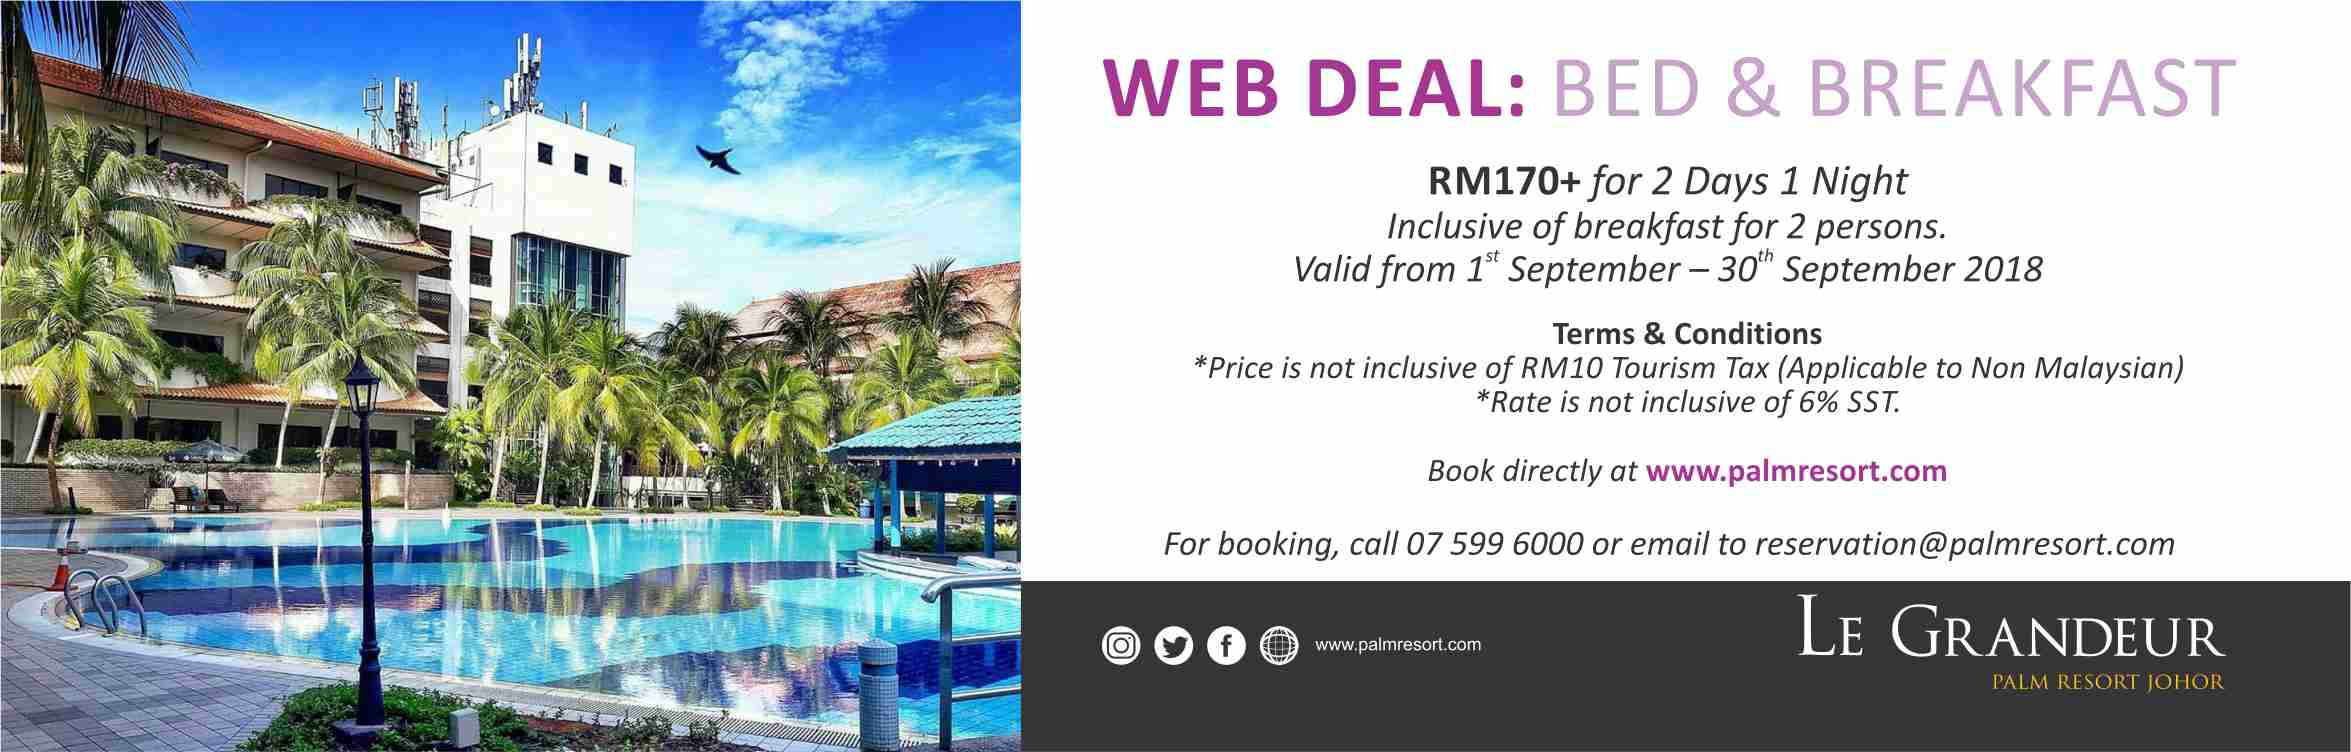 Web Deal: Bed & Breakfast